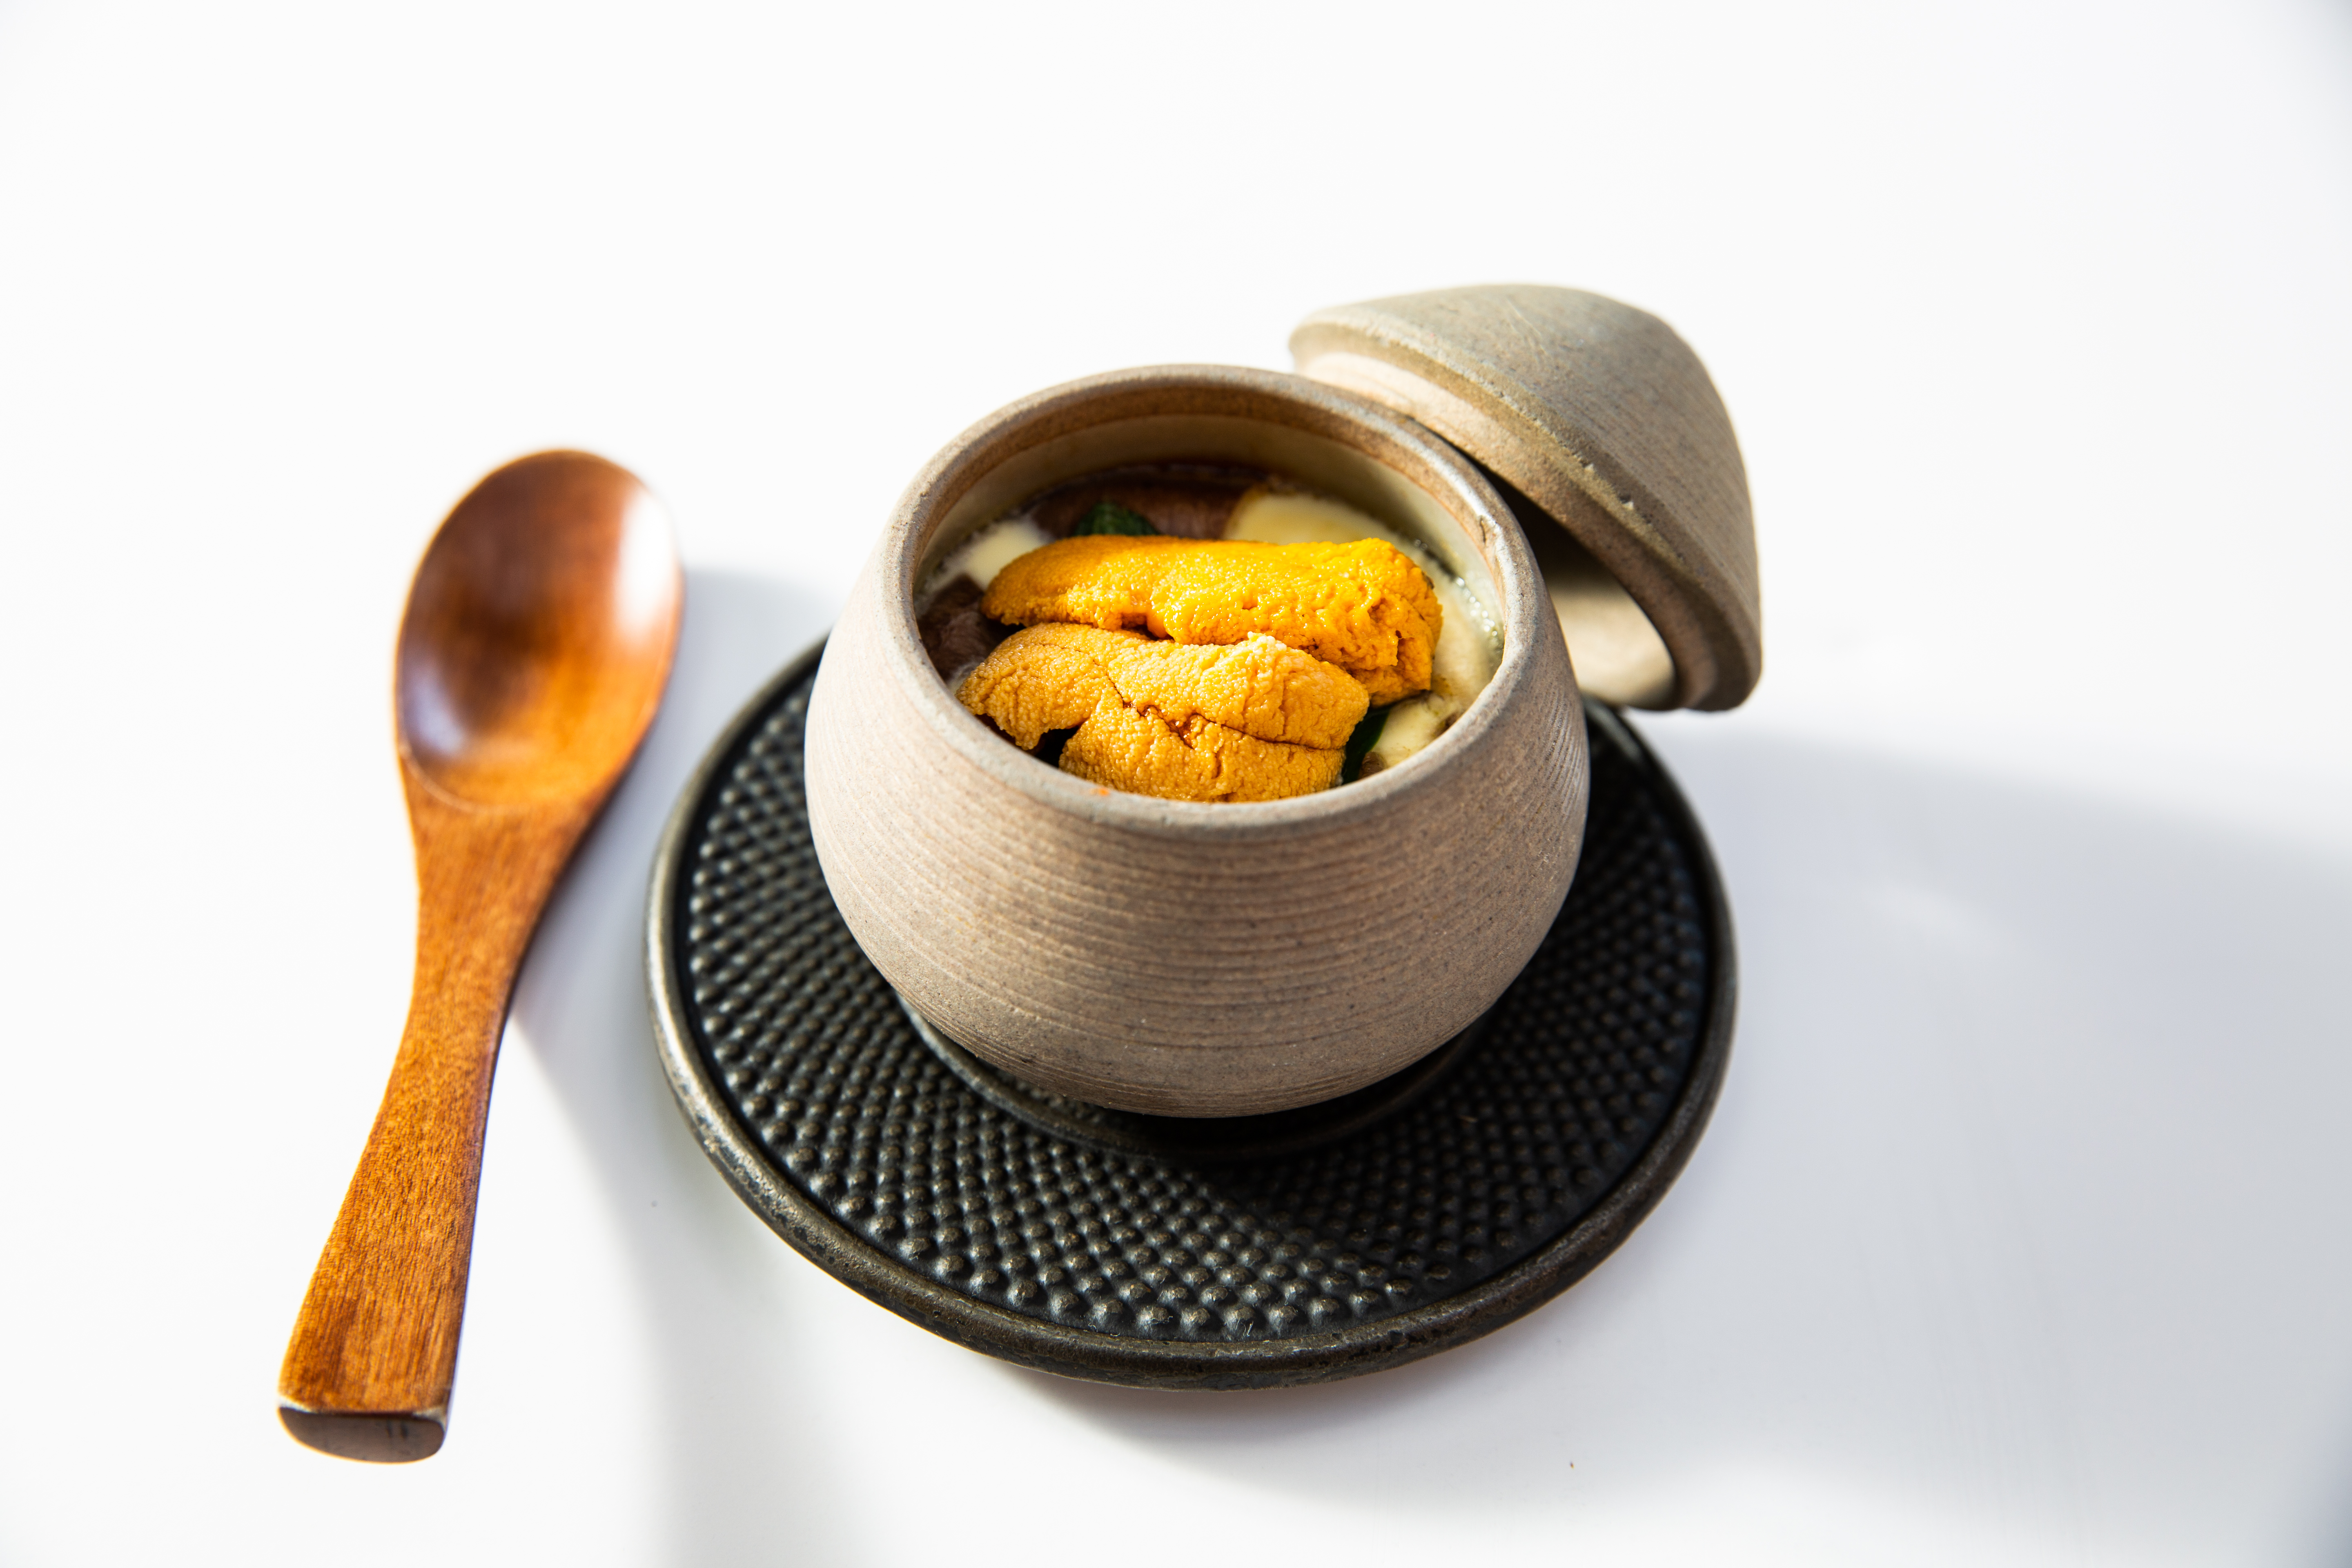 egg and uni custard in a clay pot with a wooden spoon